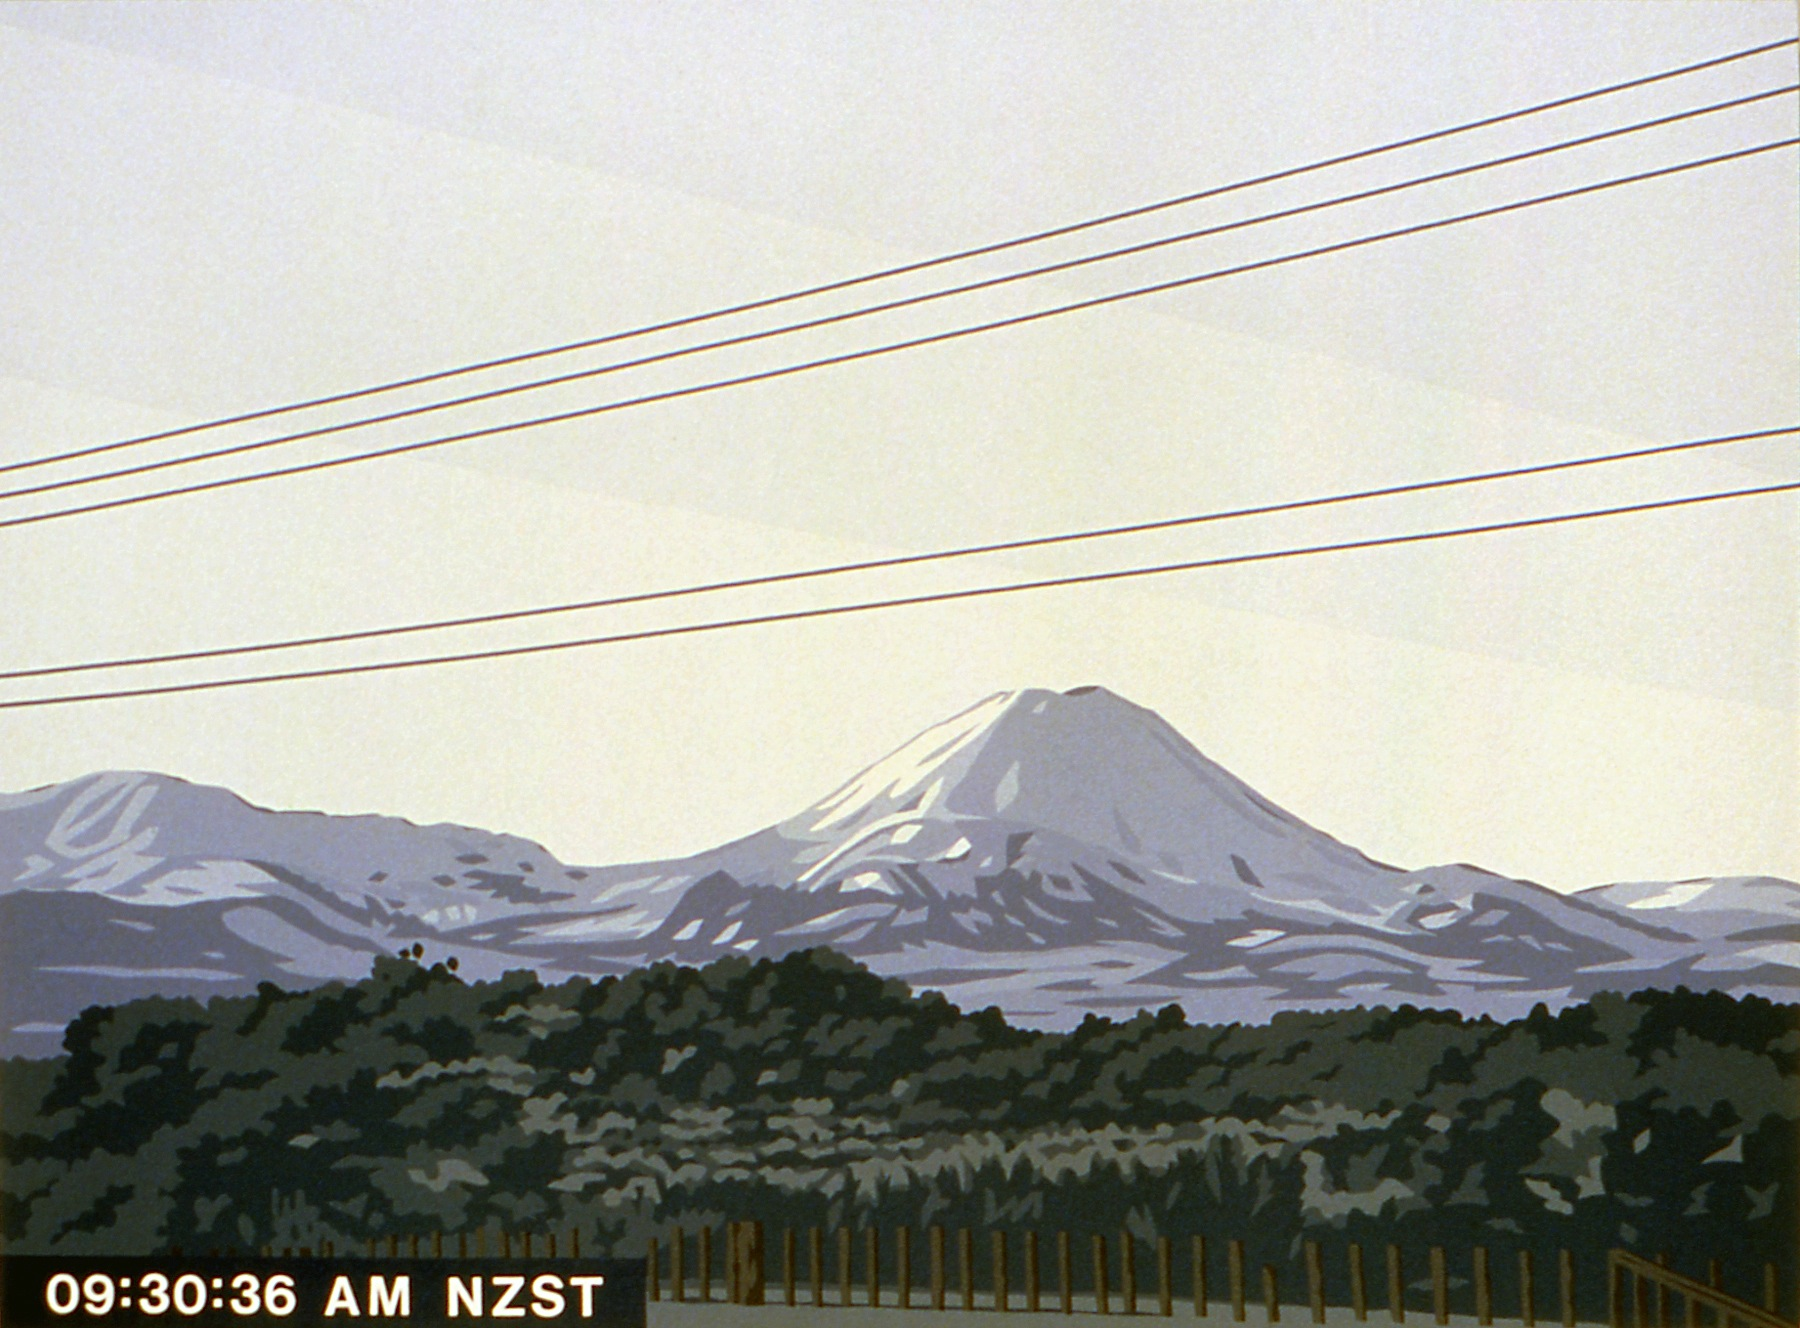 Webcam: New Zealand, 2002